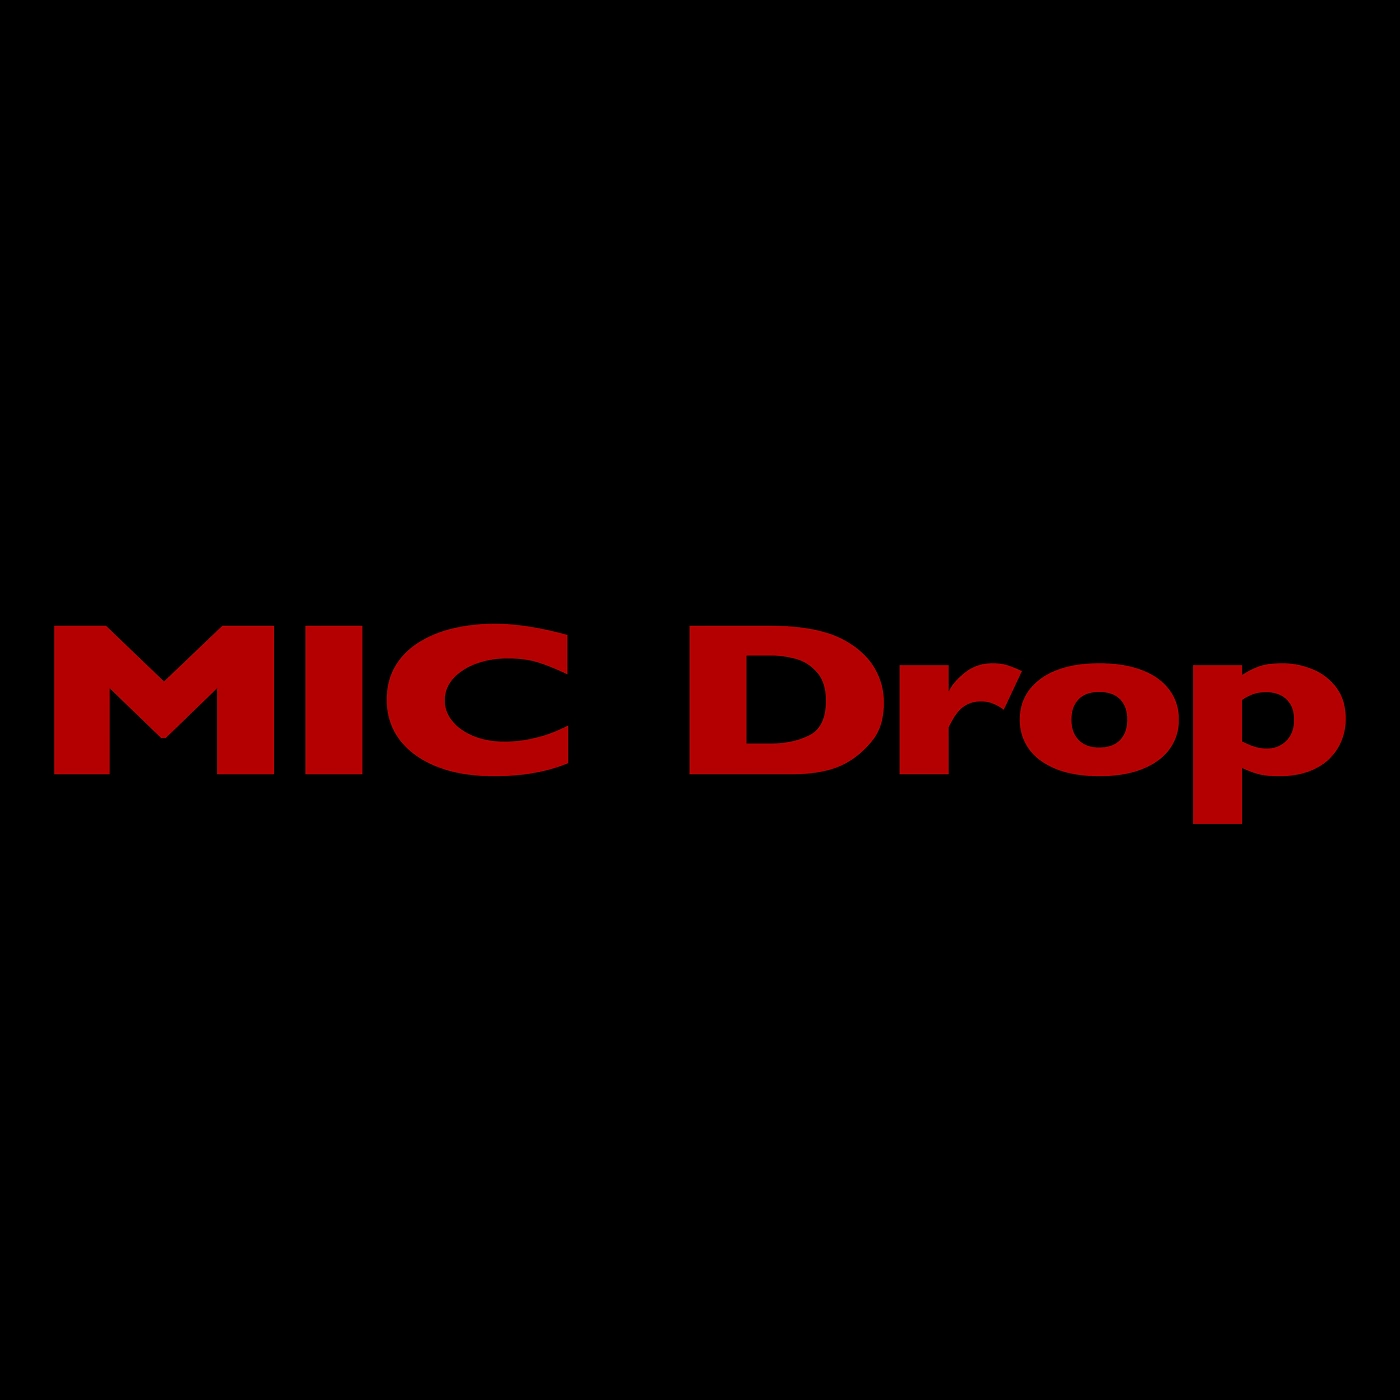 BTS Mic Drop (Steve Aoki Remix) cover art.png